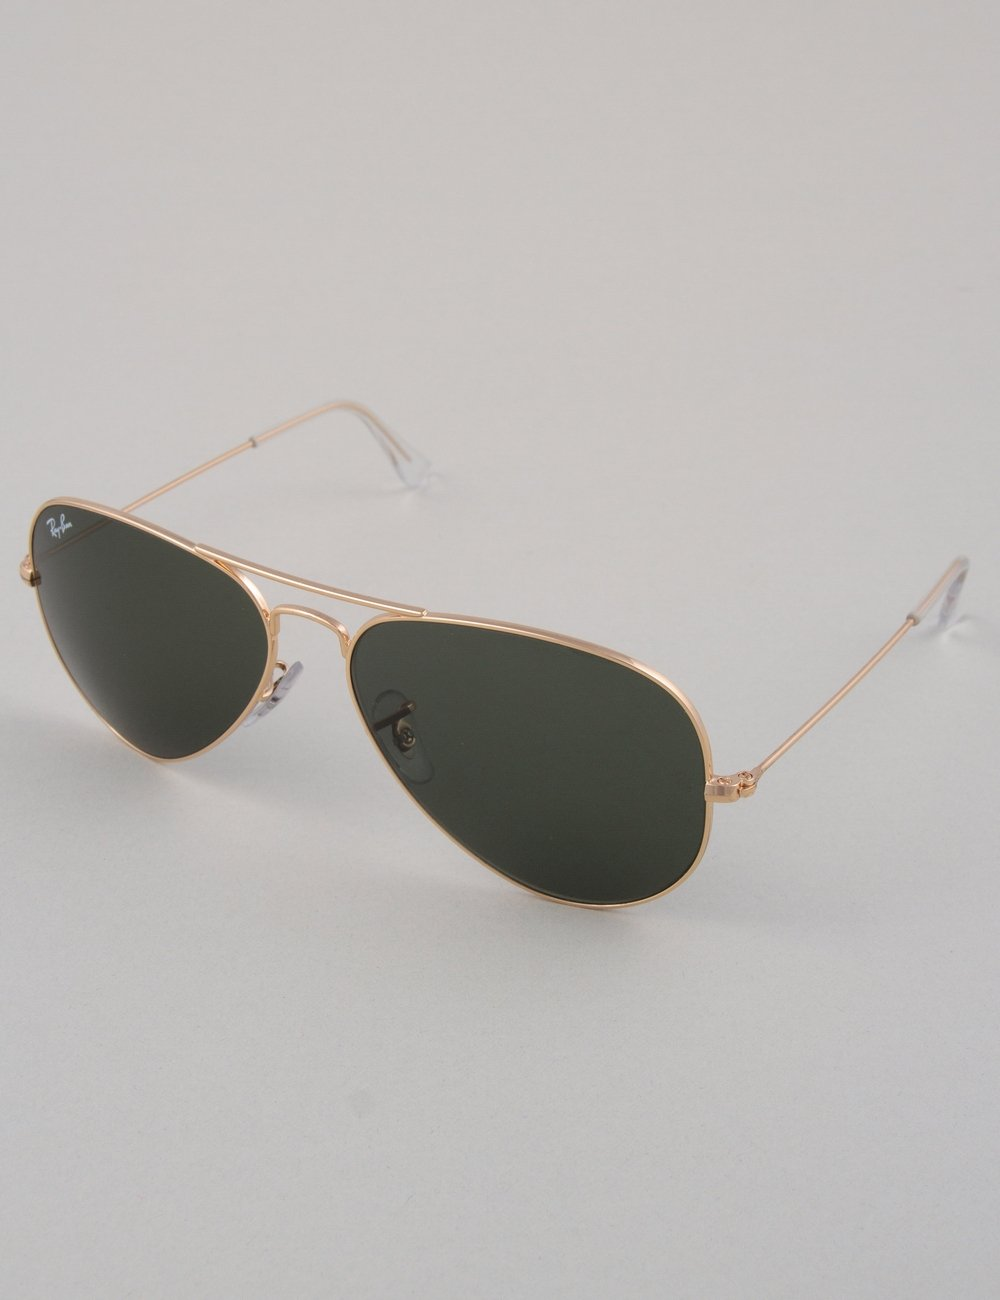 ray ban aviator large sunglasses gold green. Black Bedroom Furniture Sets. Home Design Ideas